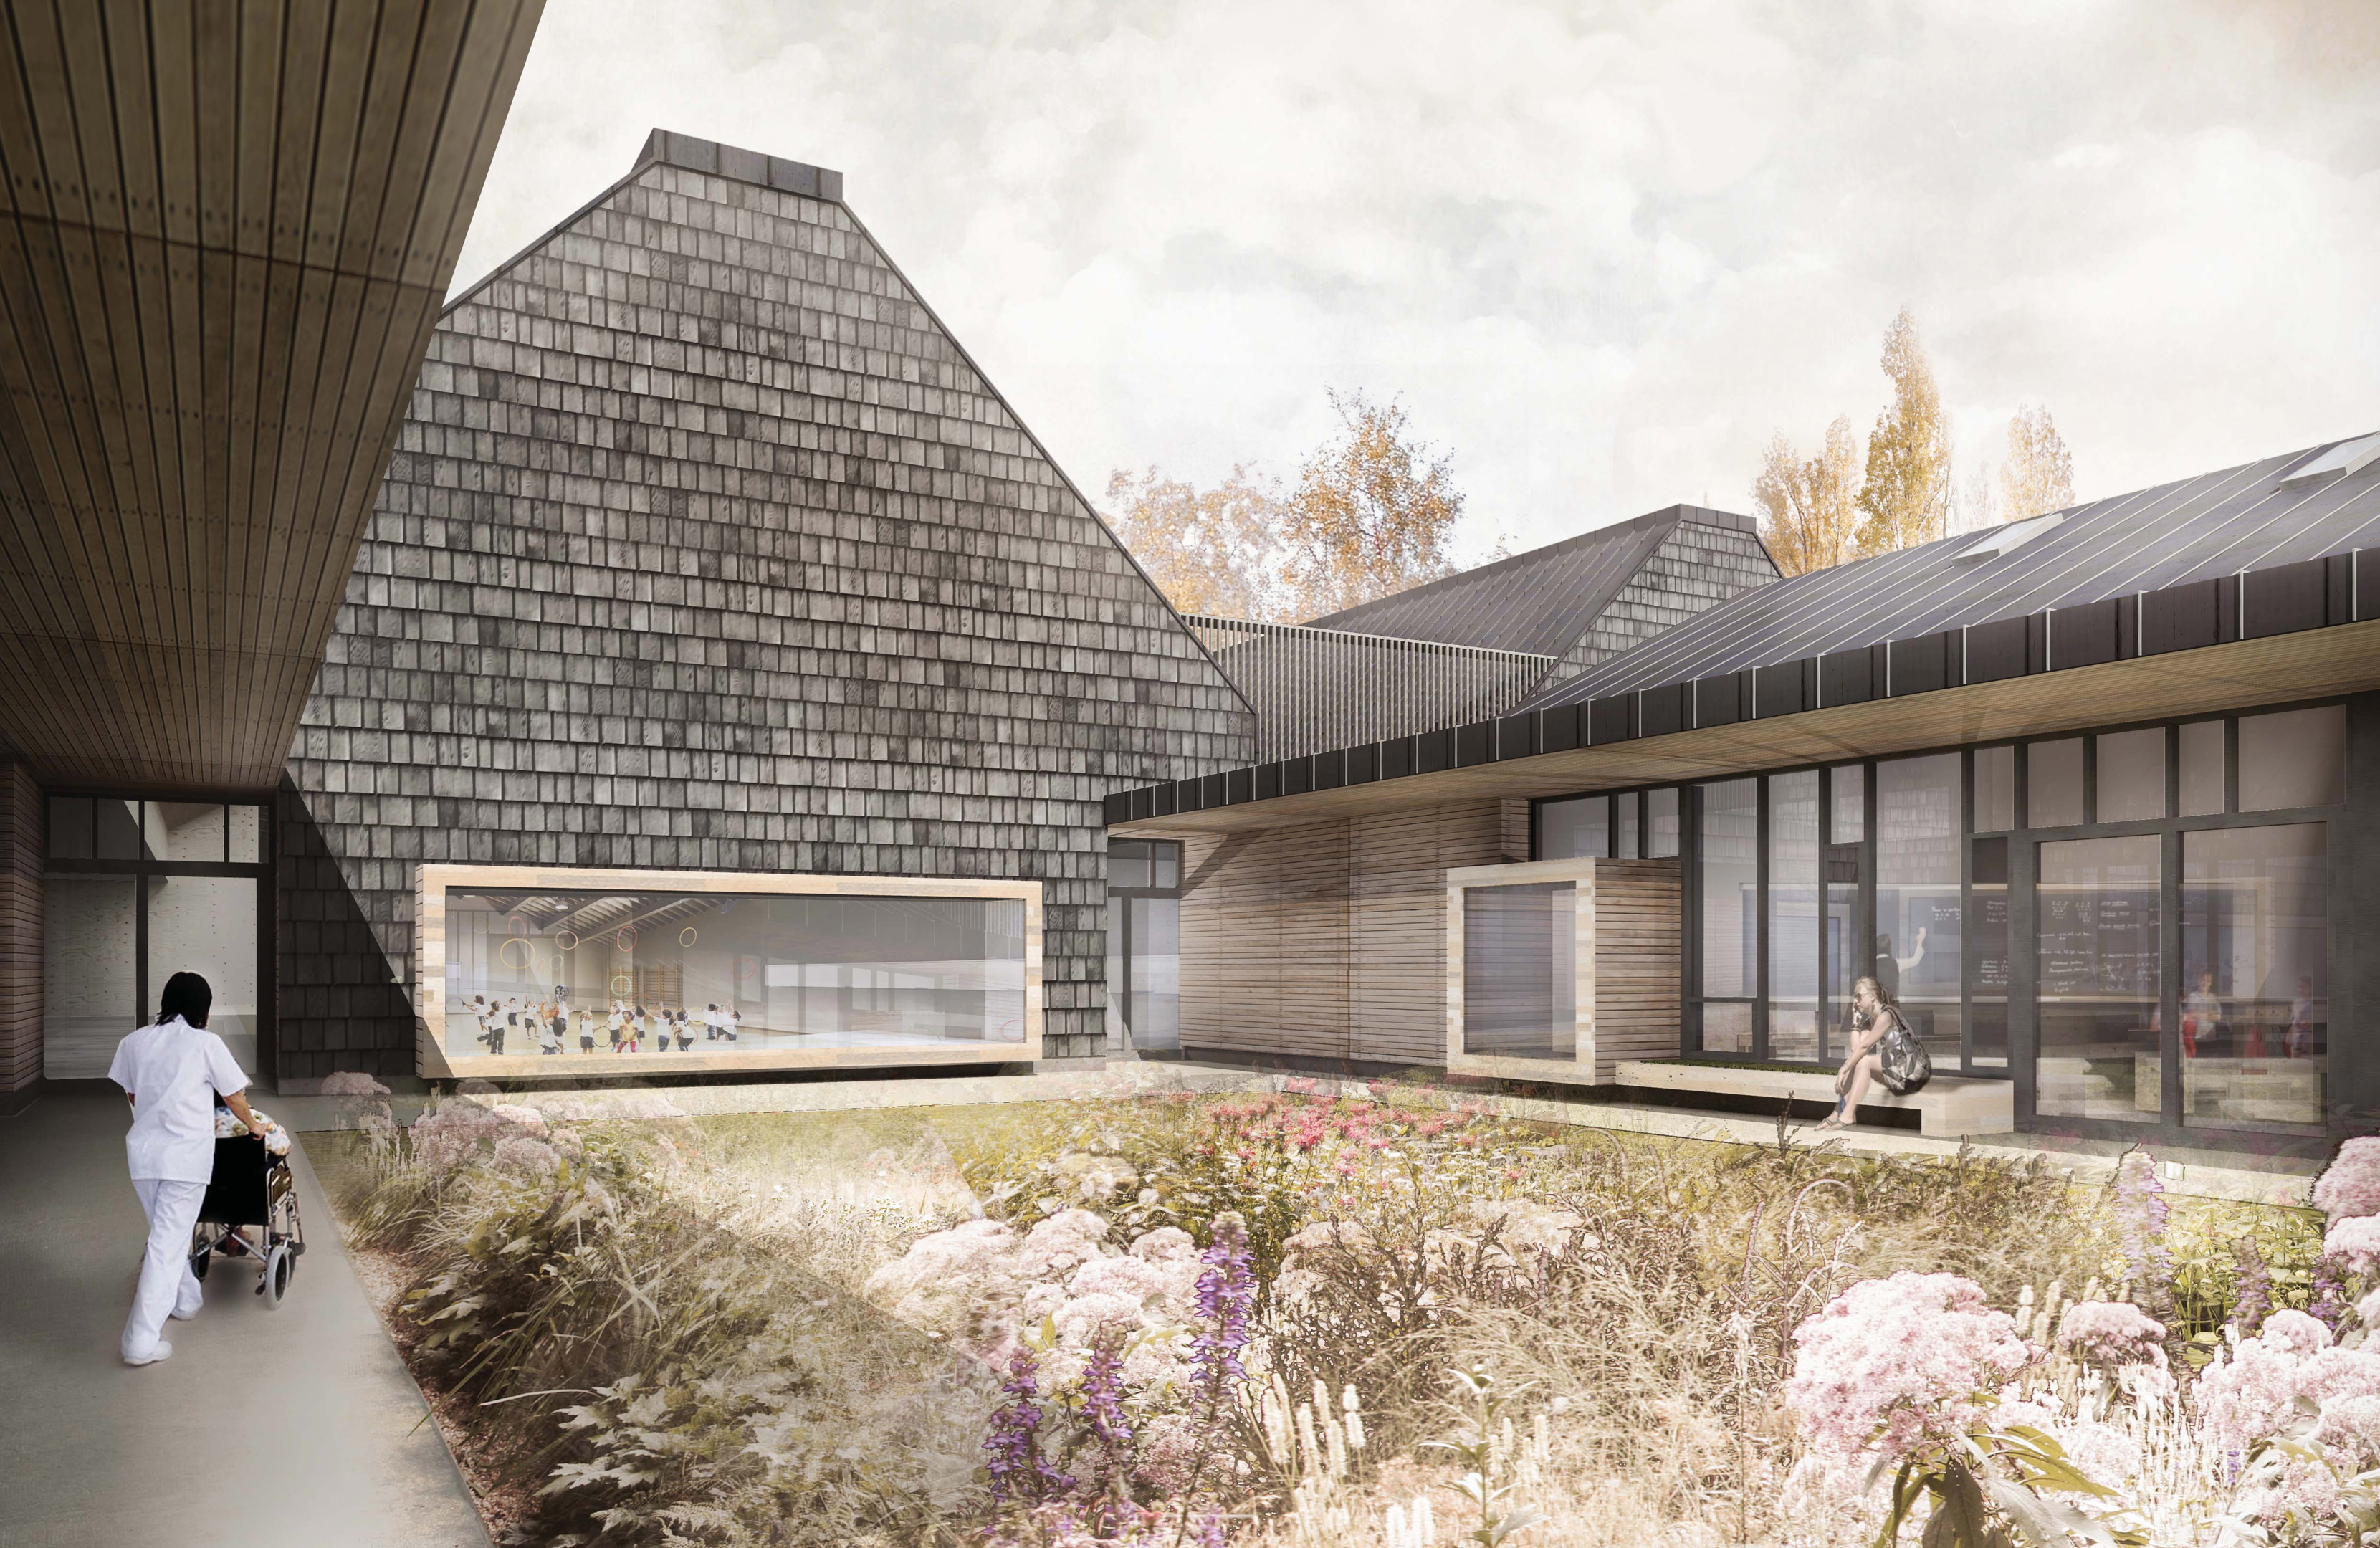 An artist's impression of the new Complex Needs School on Howes Road.